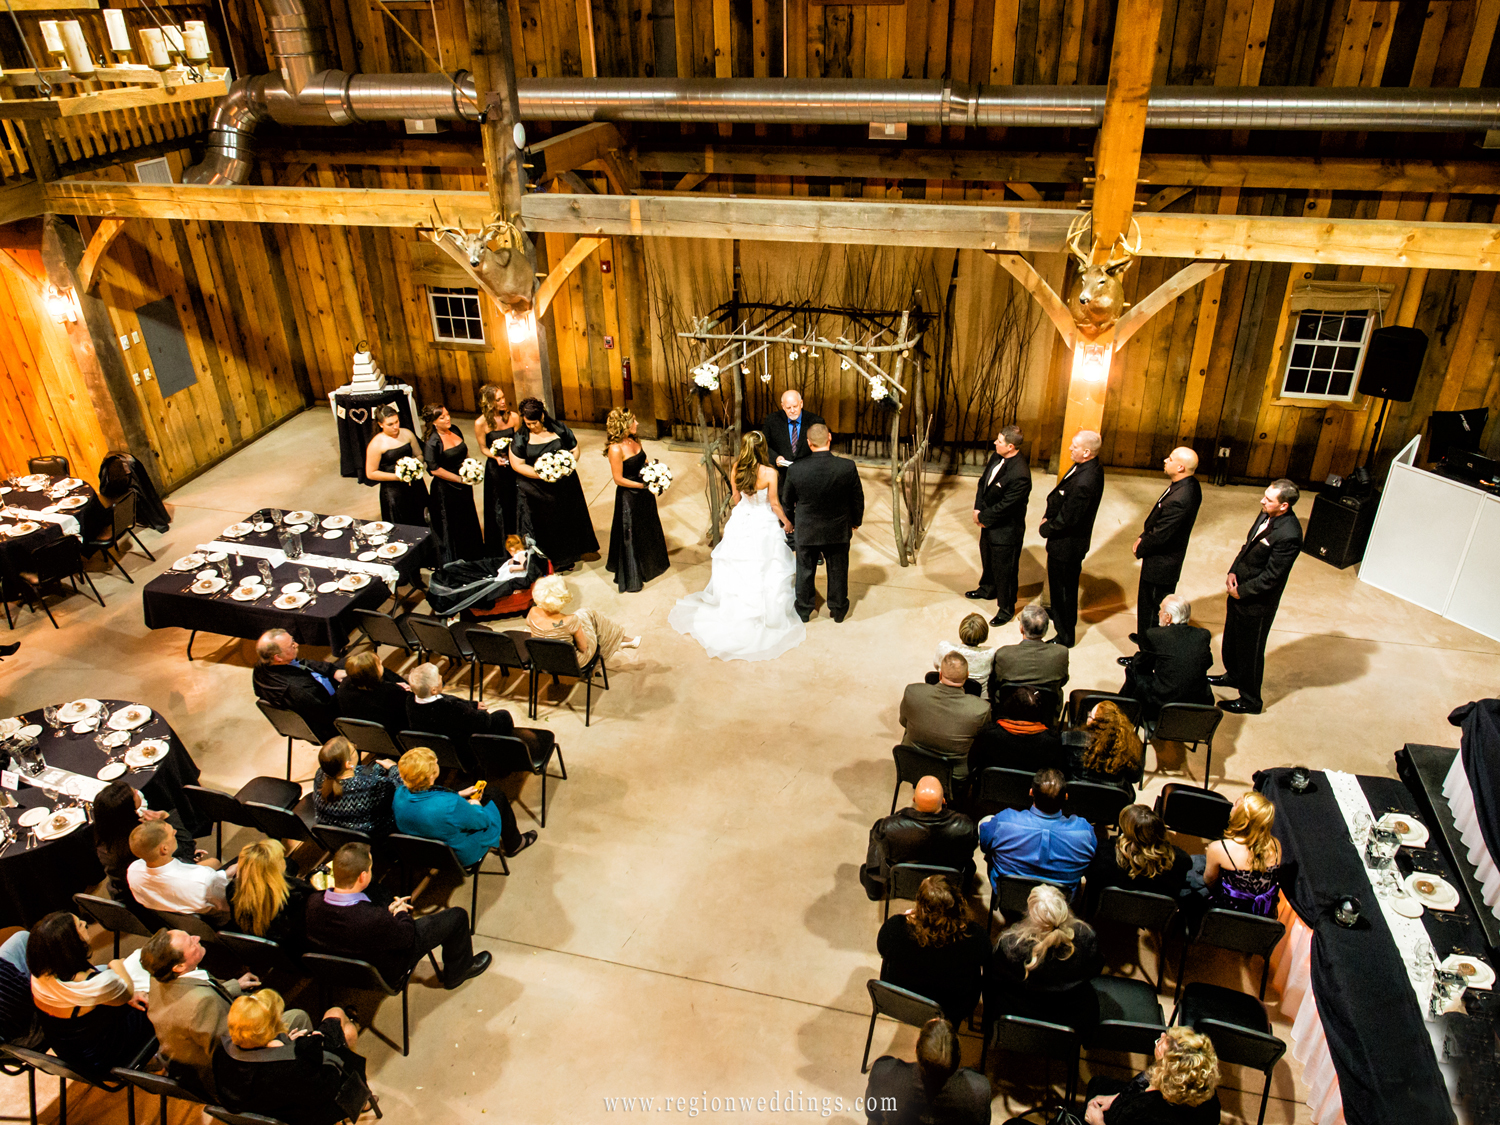 A wedding ceremony photo taken from the balcony of the barn at County Line Orchard.